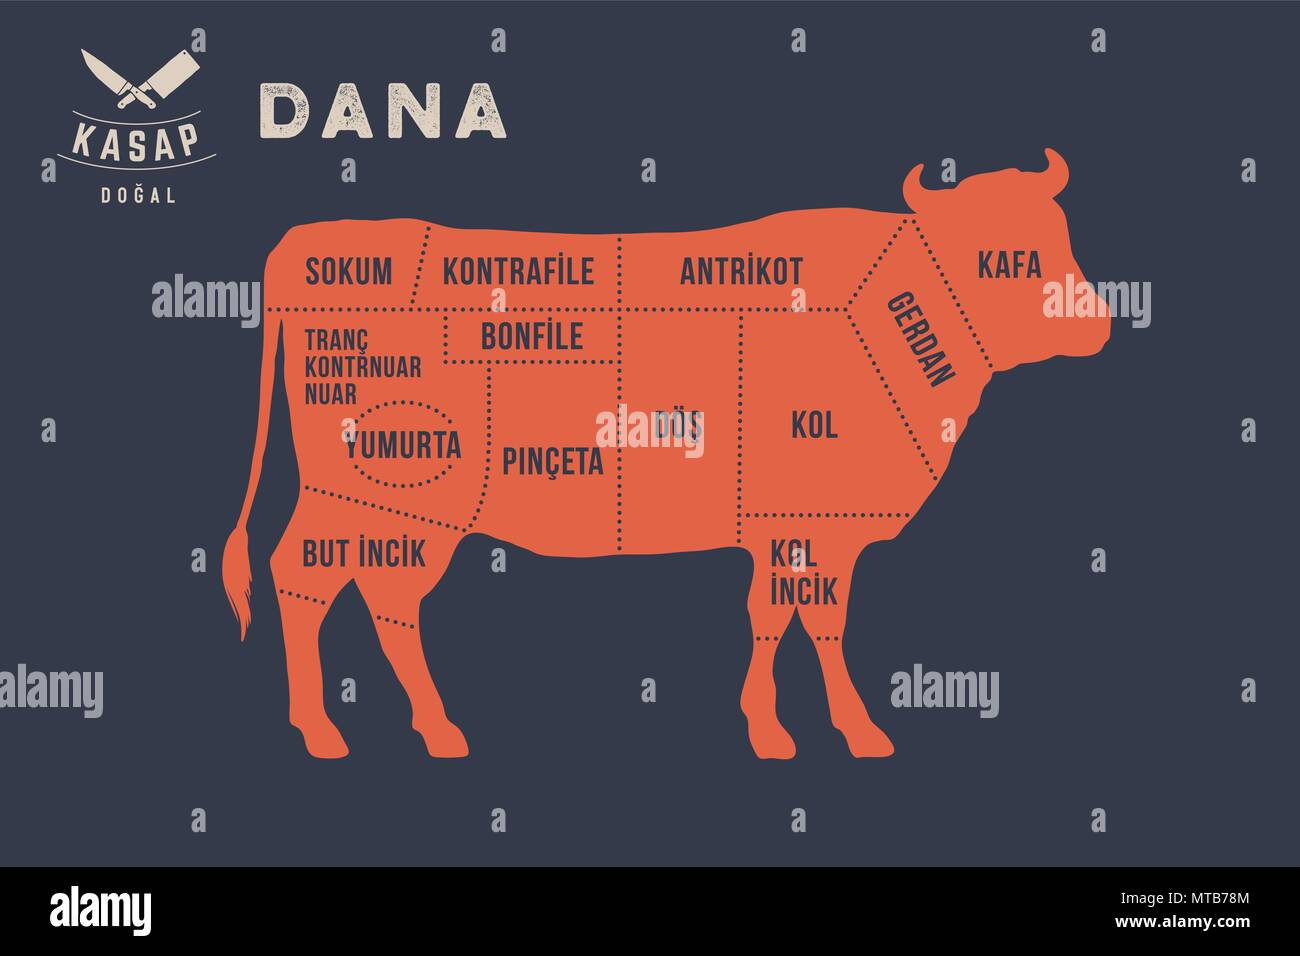 Meat cuts. Poster Butcher diagram - Dana - Stock Image